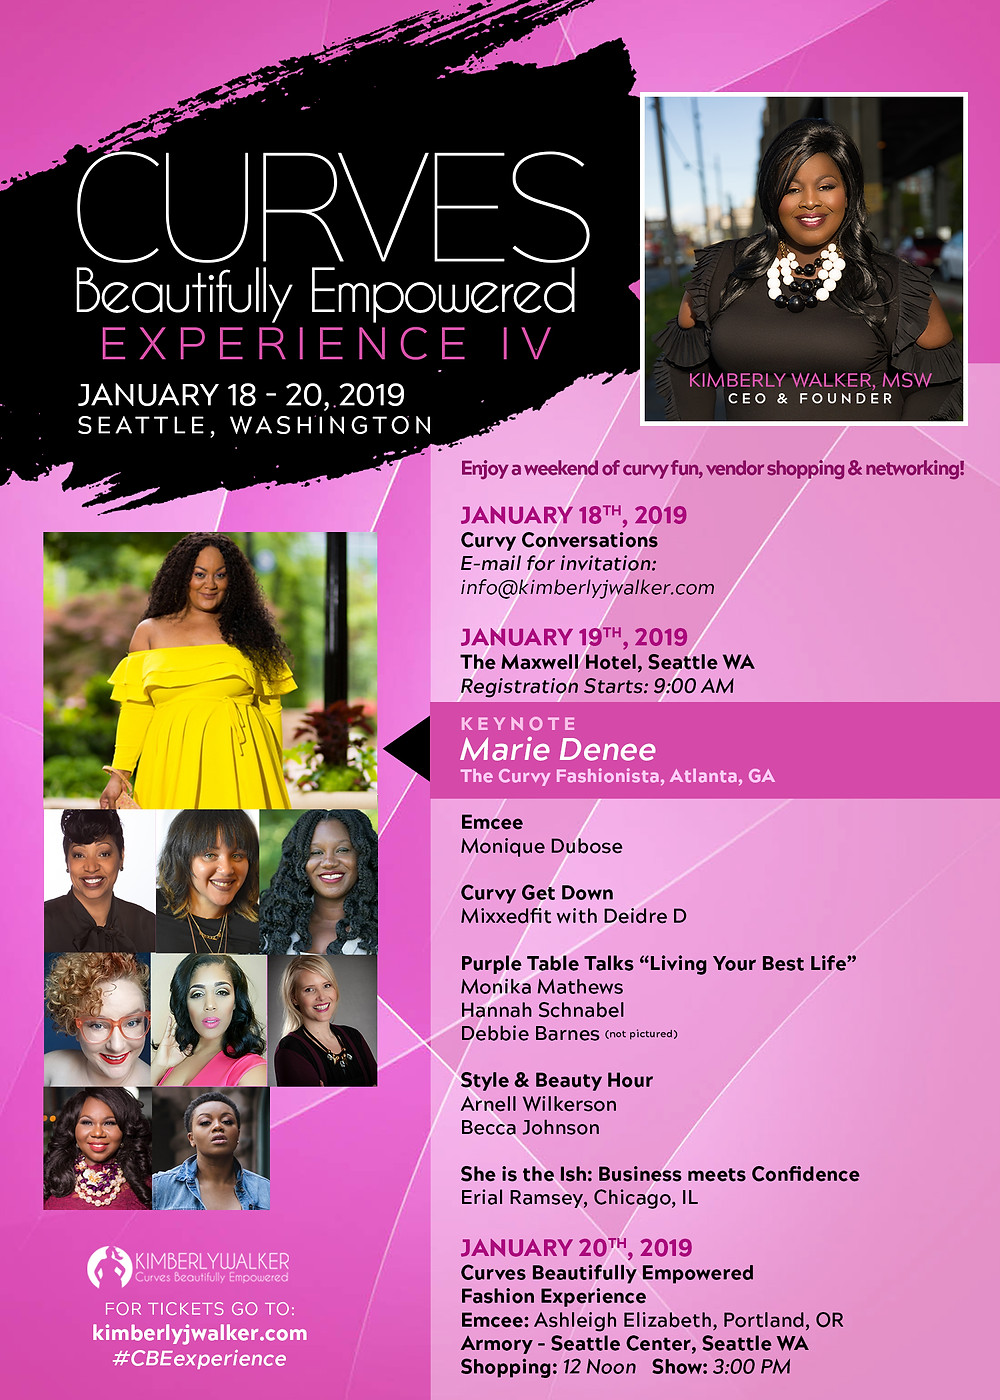 Flyer for Curves Beautifully Empowered with the schedule for the weekend